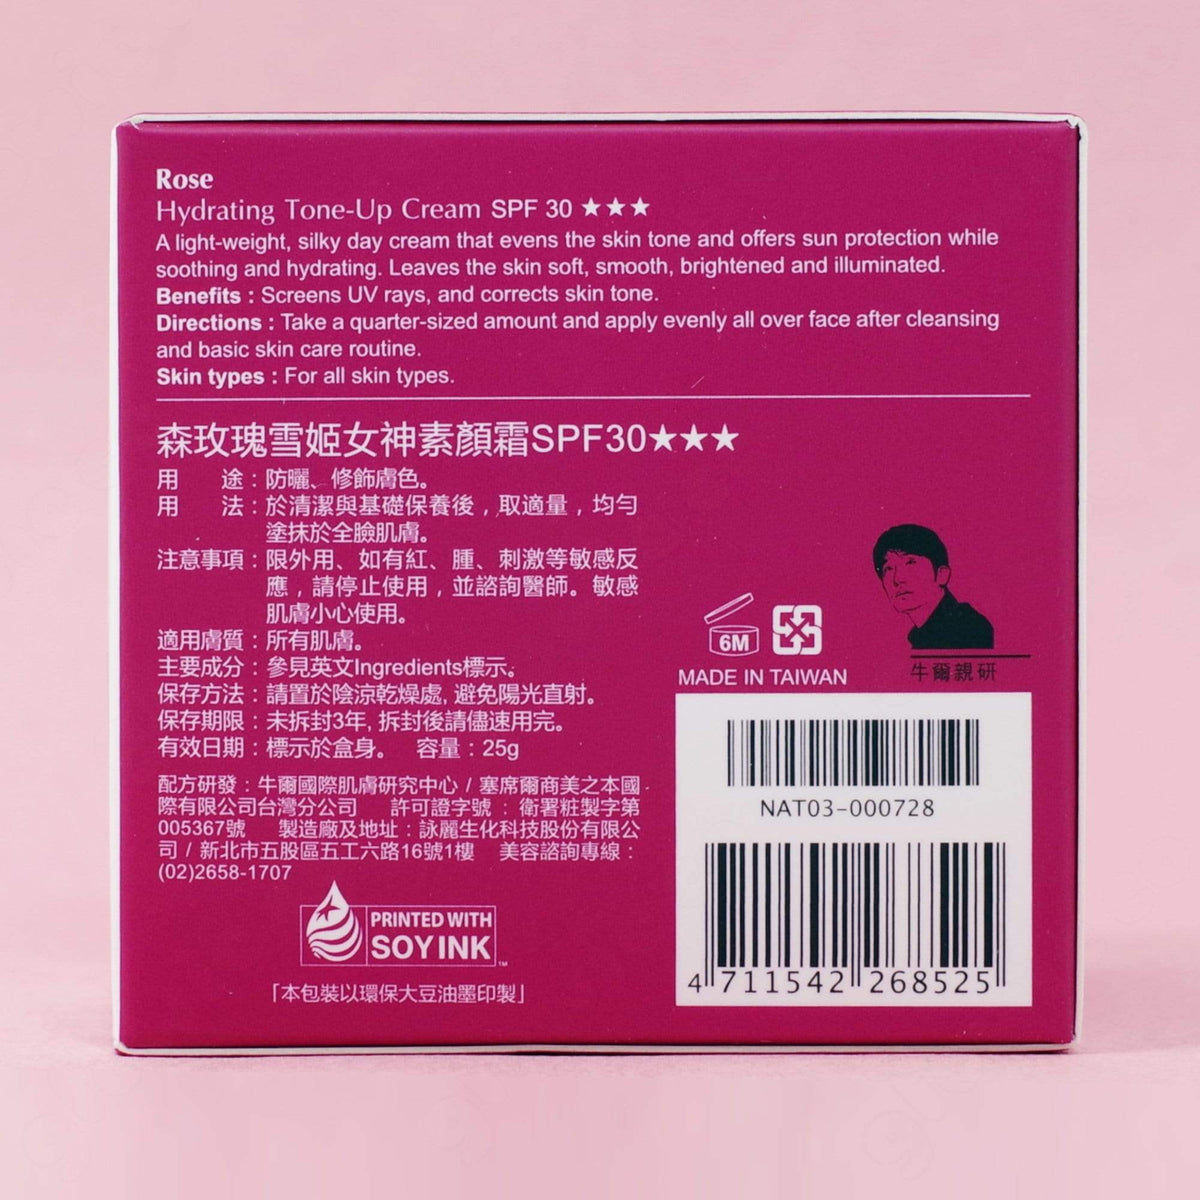 Naruko Rose Hydrating Tone-Up Cream SPF30